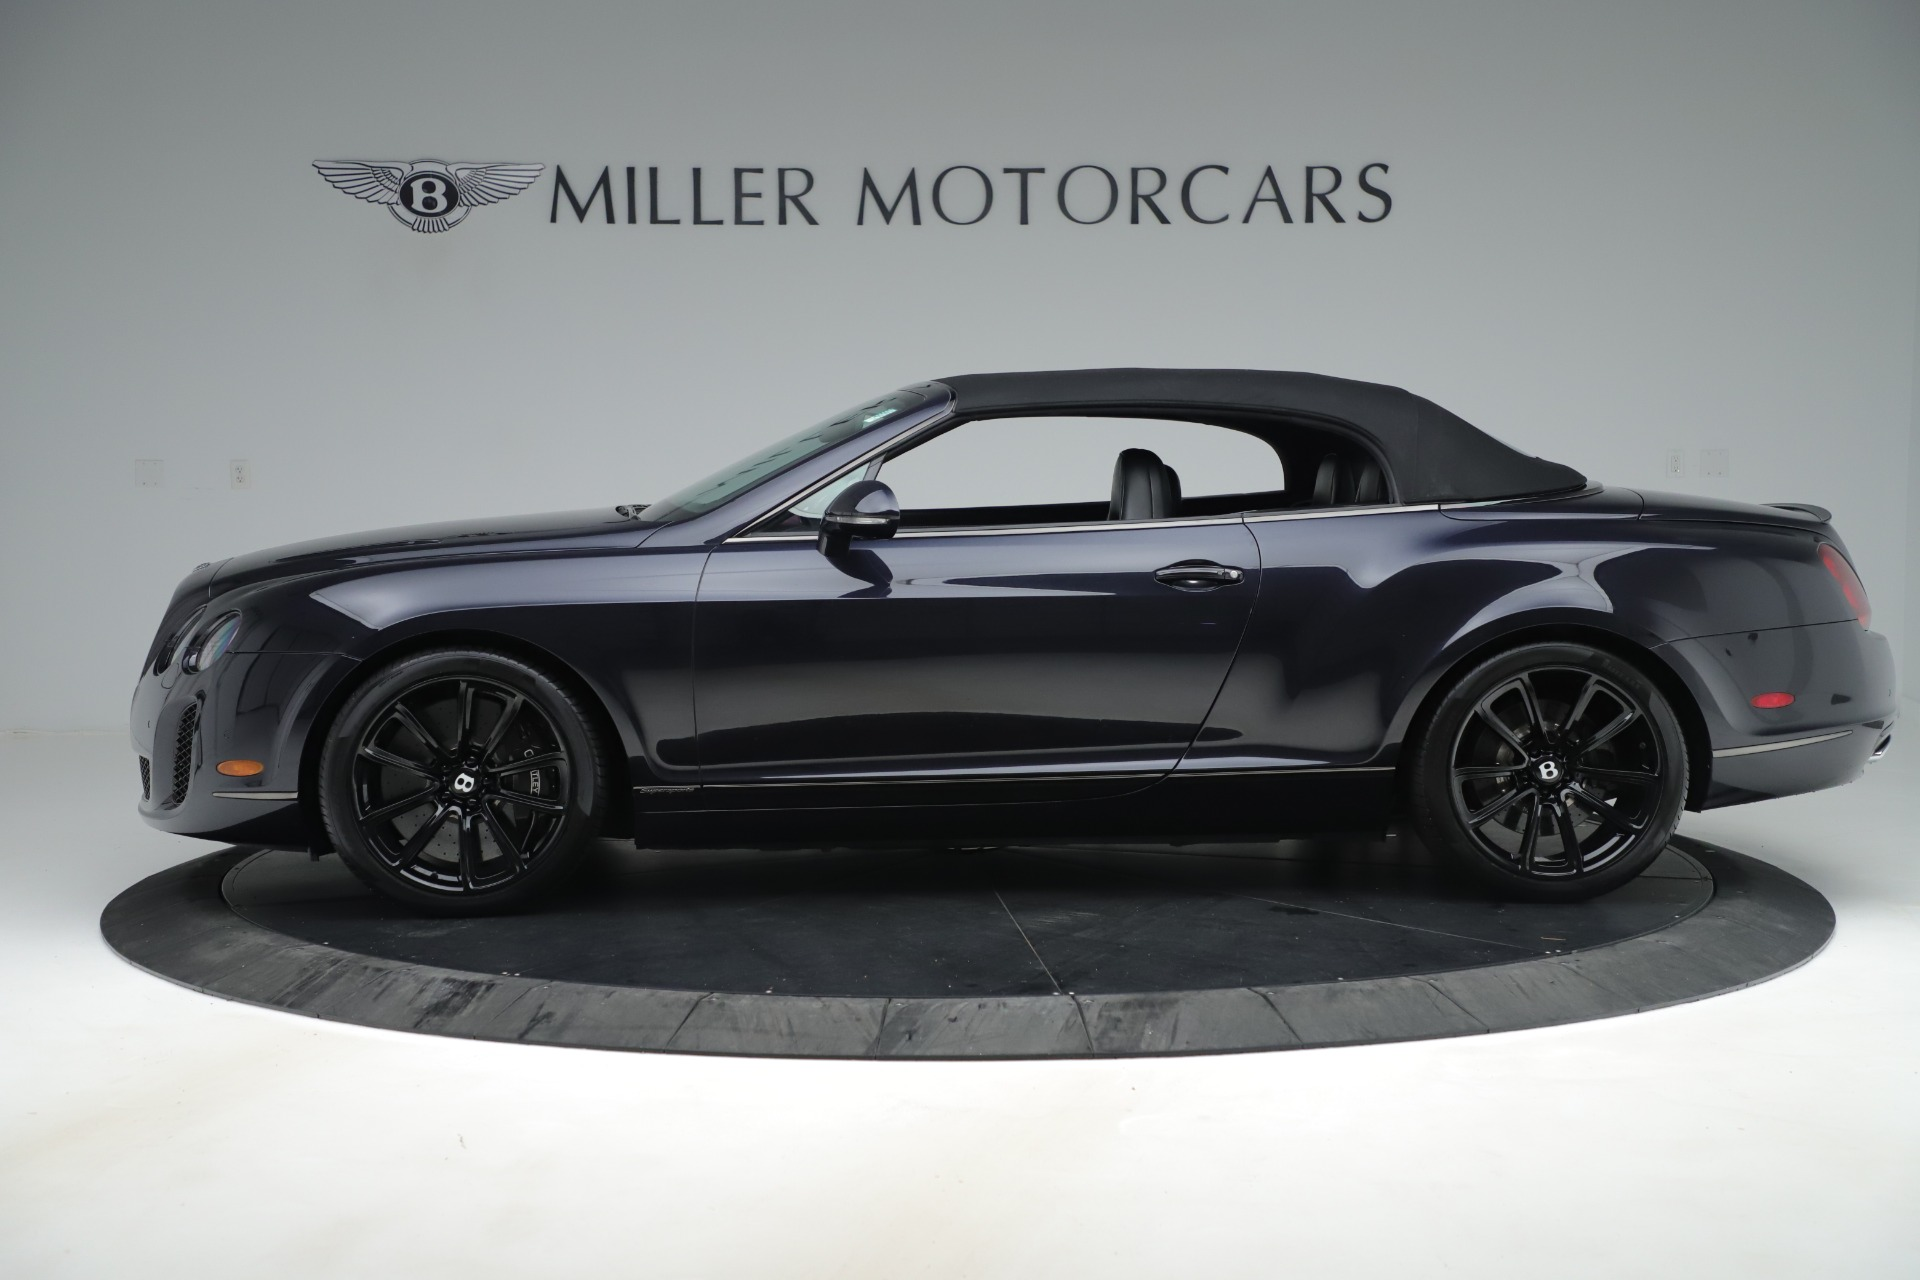 Used 2012 Bentley Continental GT Supersports For Sale In Westport, CT 3214_p14